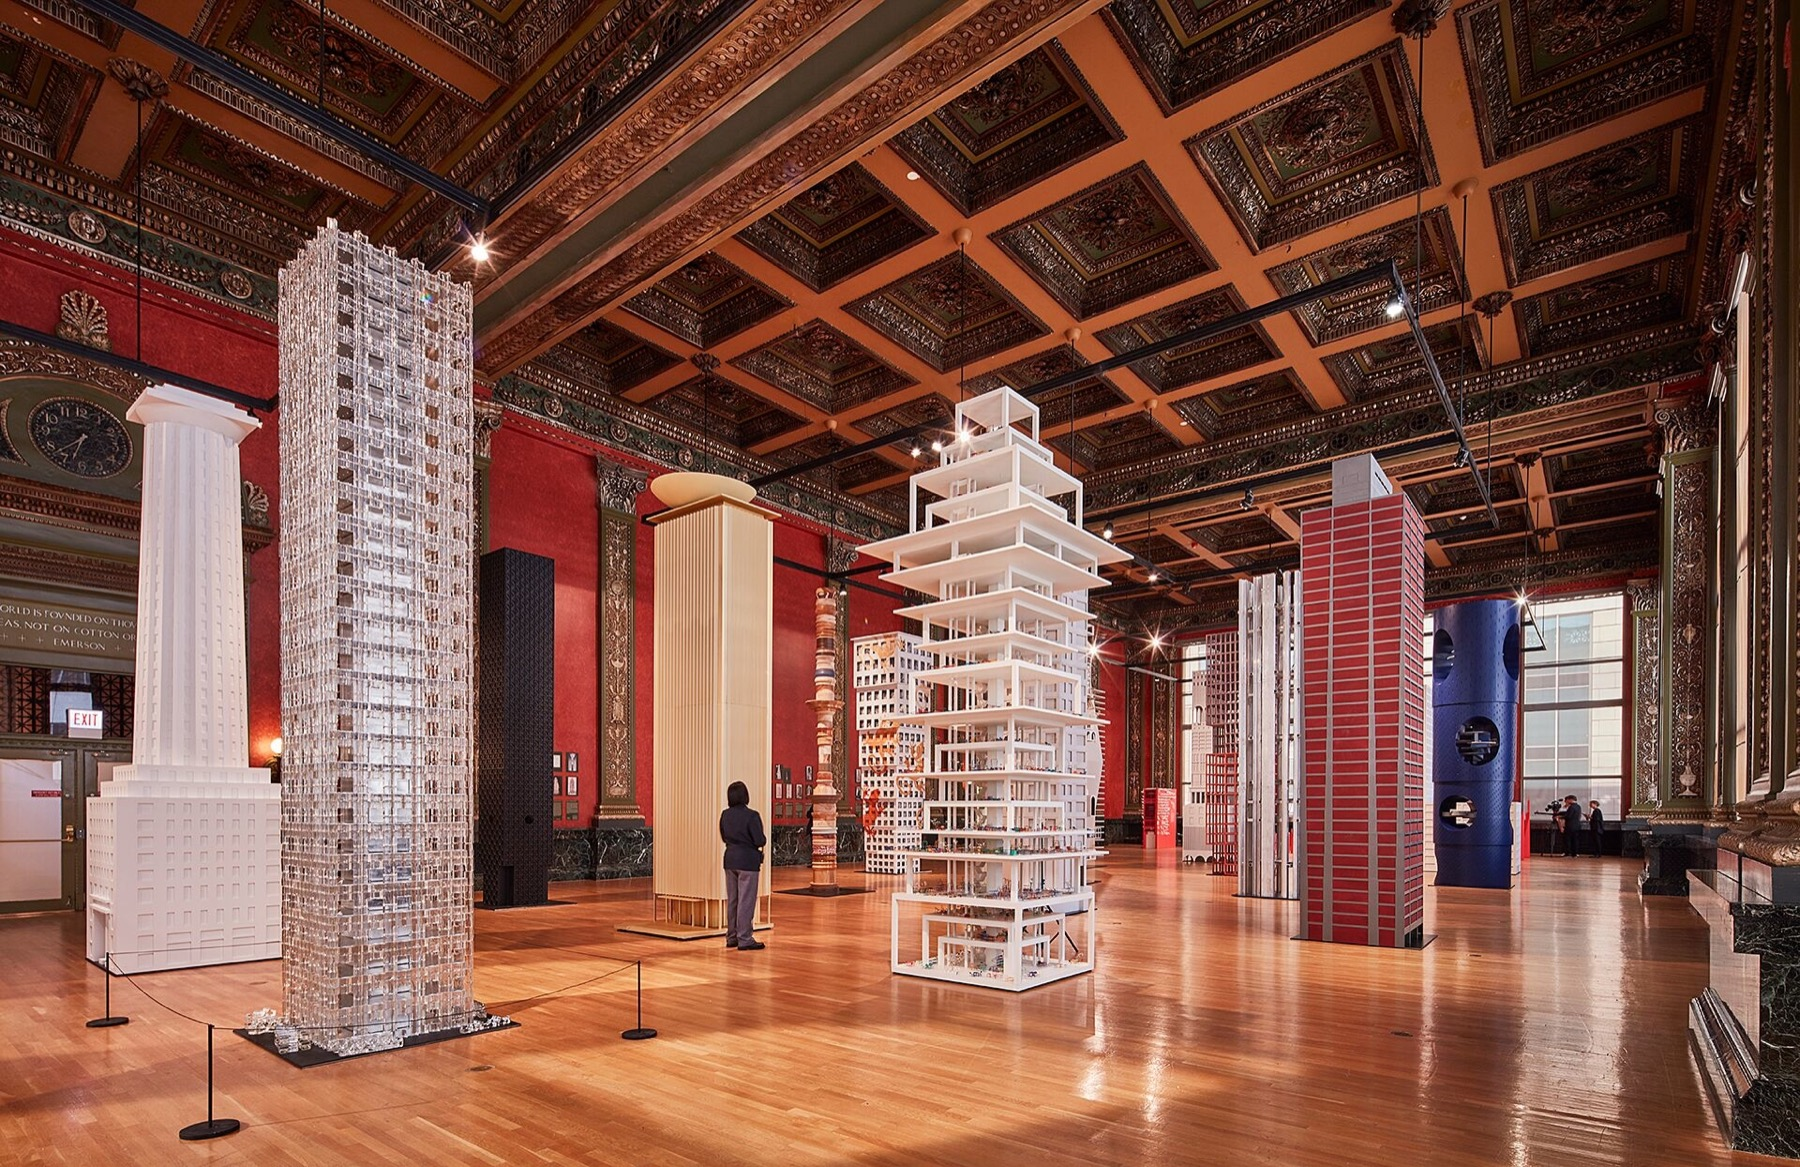 2019 Chicago Architecture Biennial